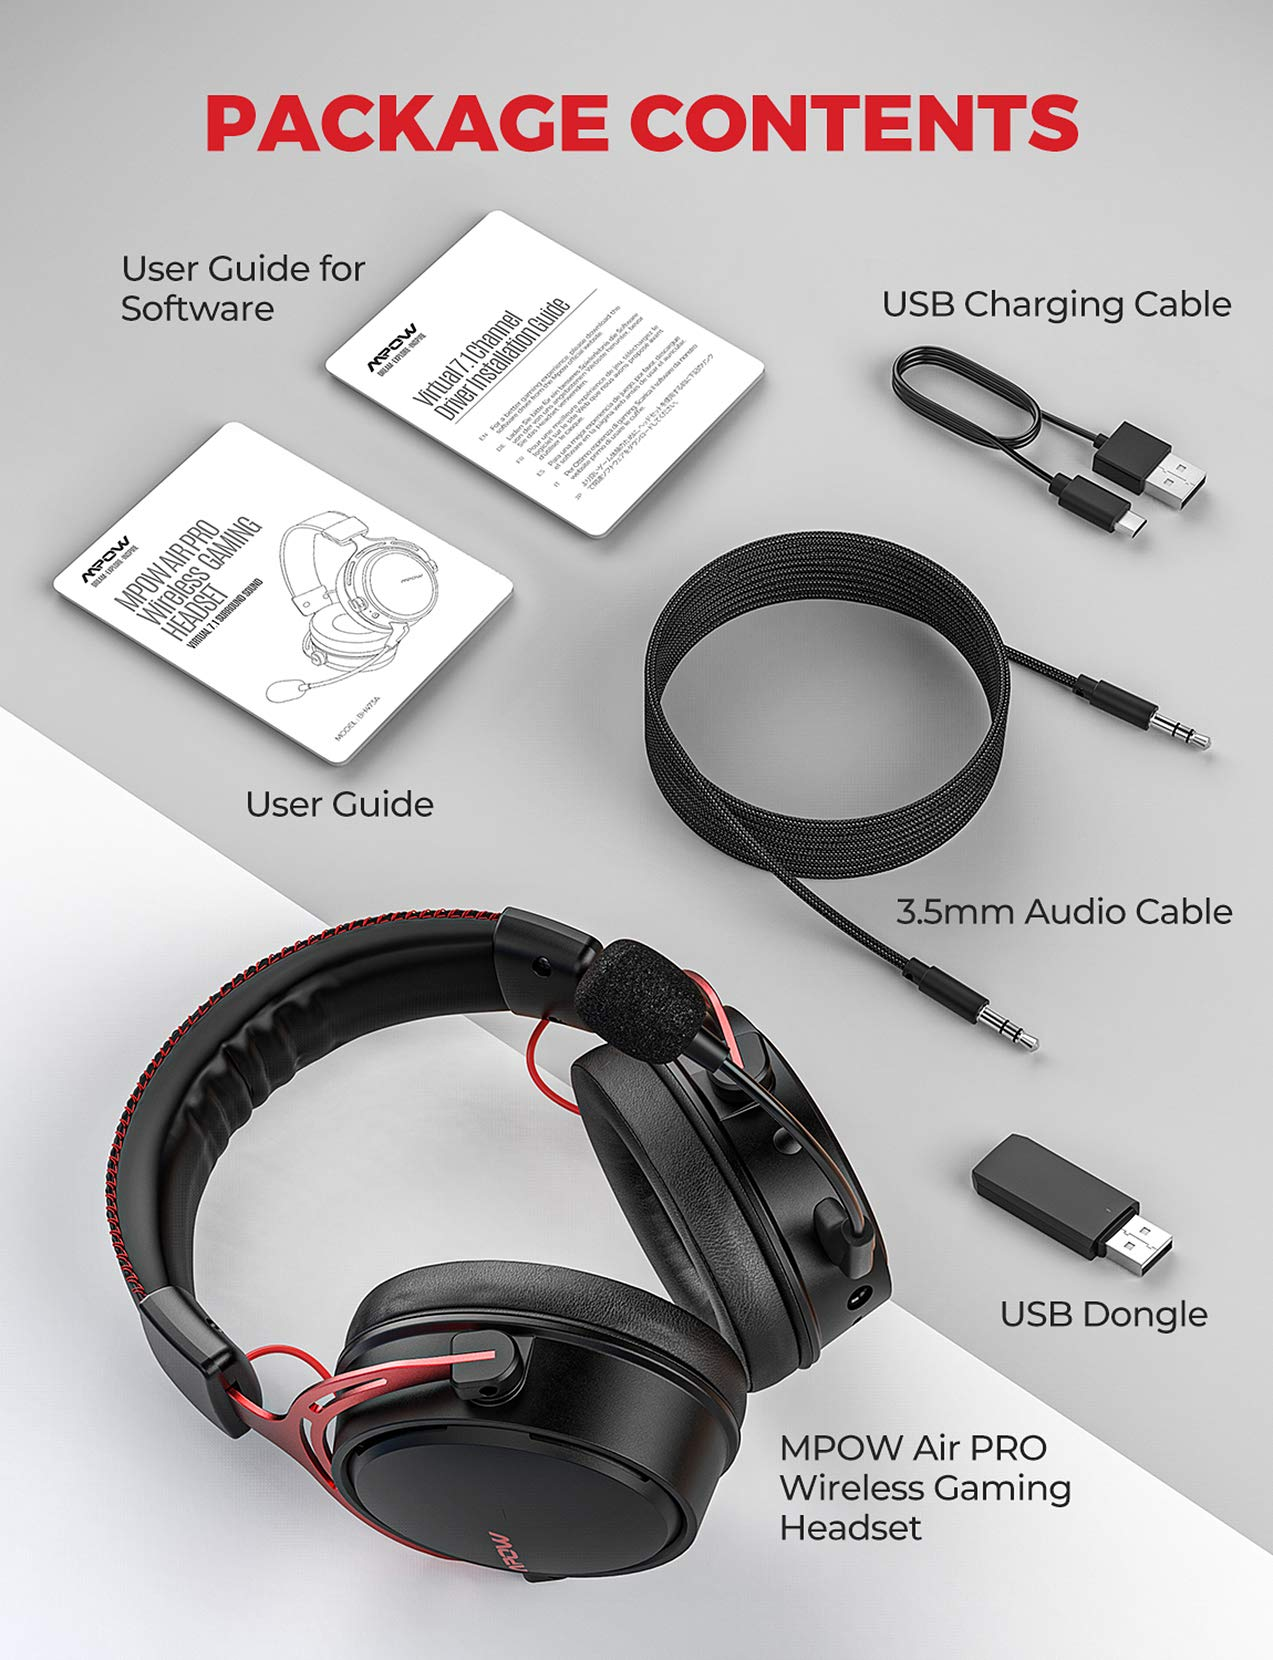 Mpow Air Pro 2.4G Wireless Gaming Headset